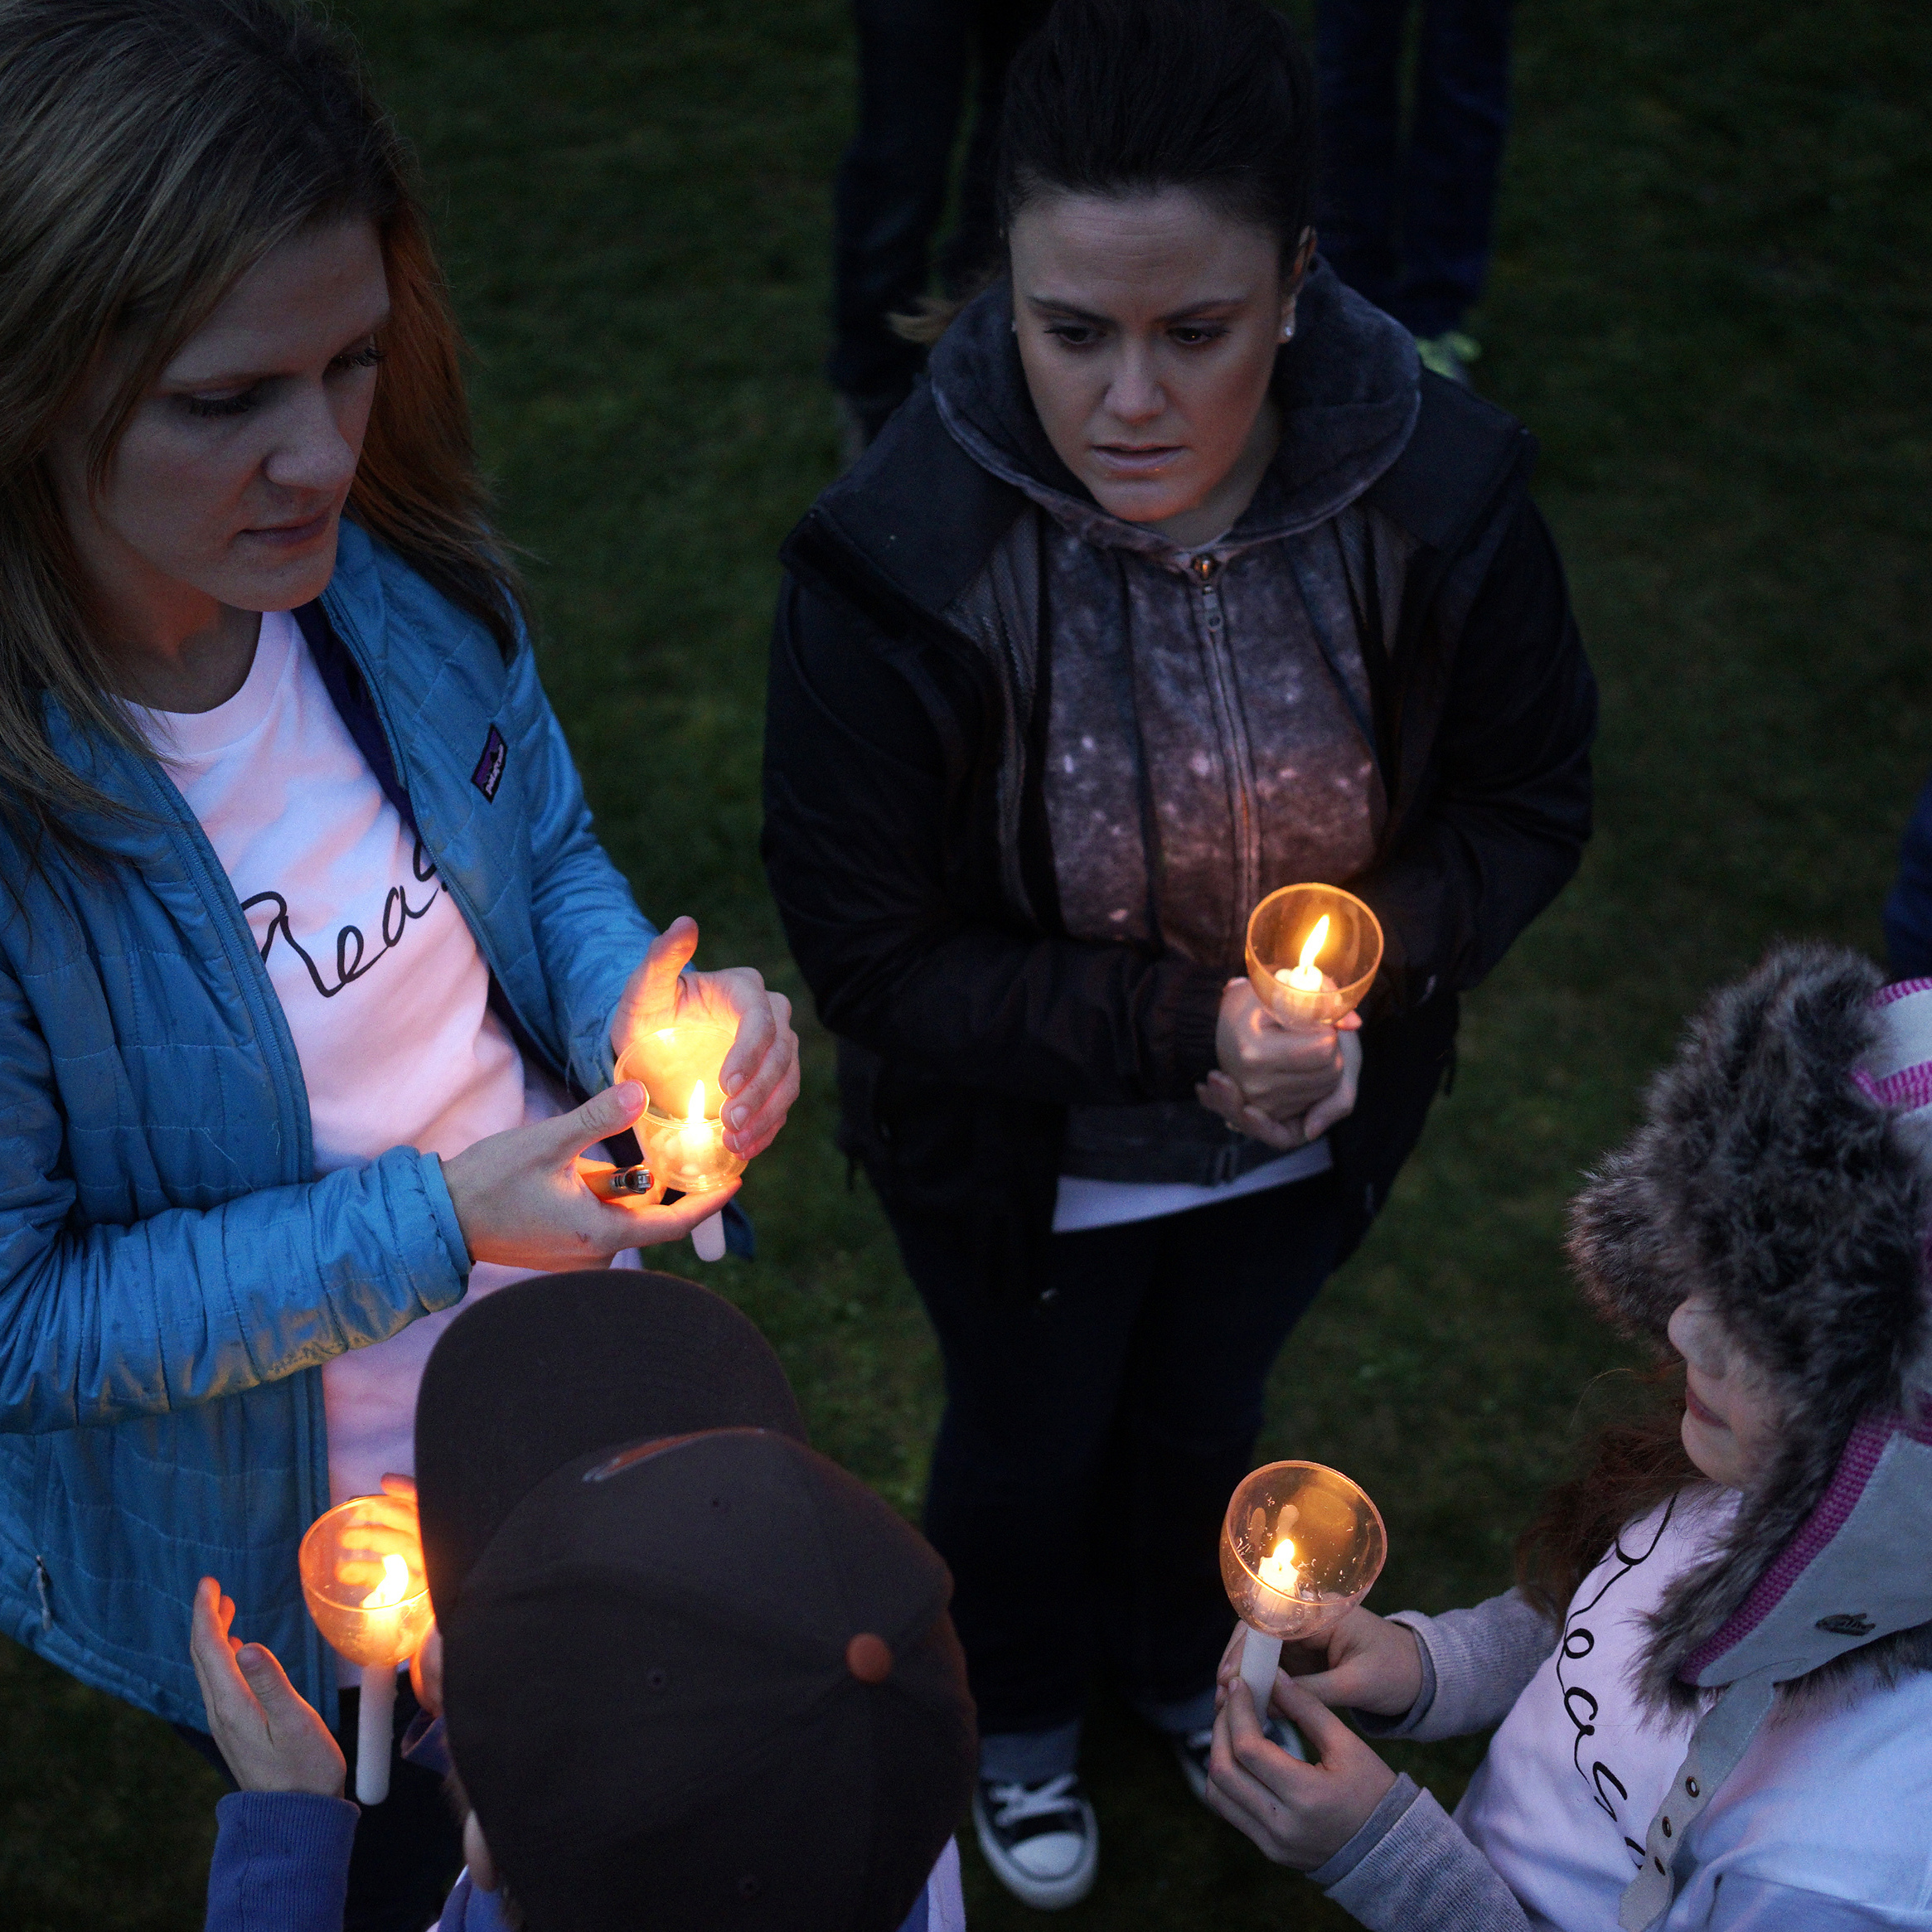 There was a candlelight vigil Tuesday near the site of the mudslide that tore through the tiny community of Oso, Wash.